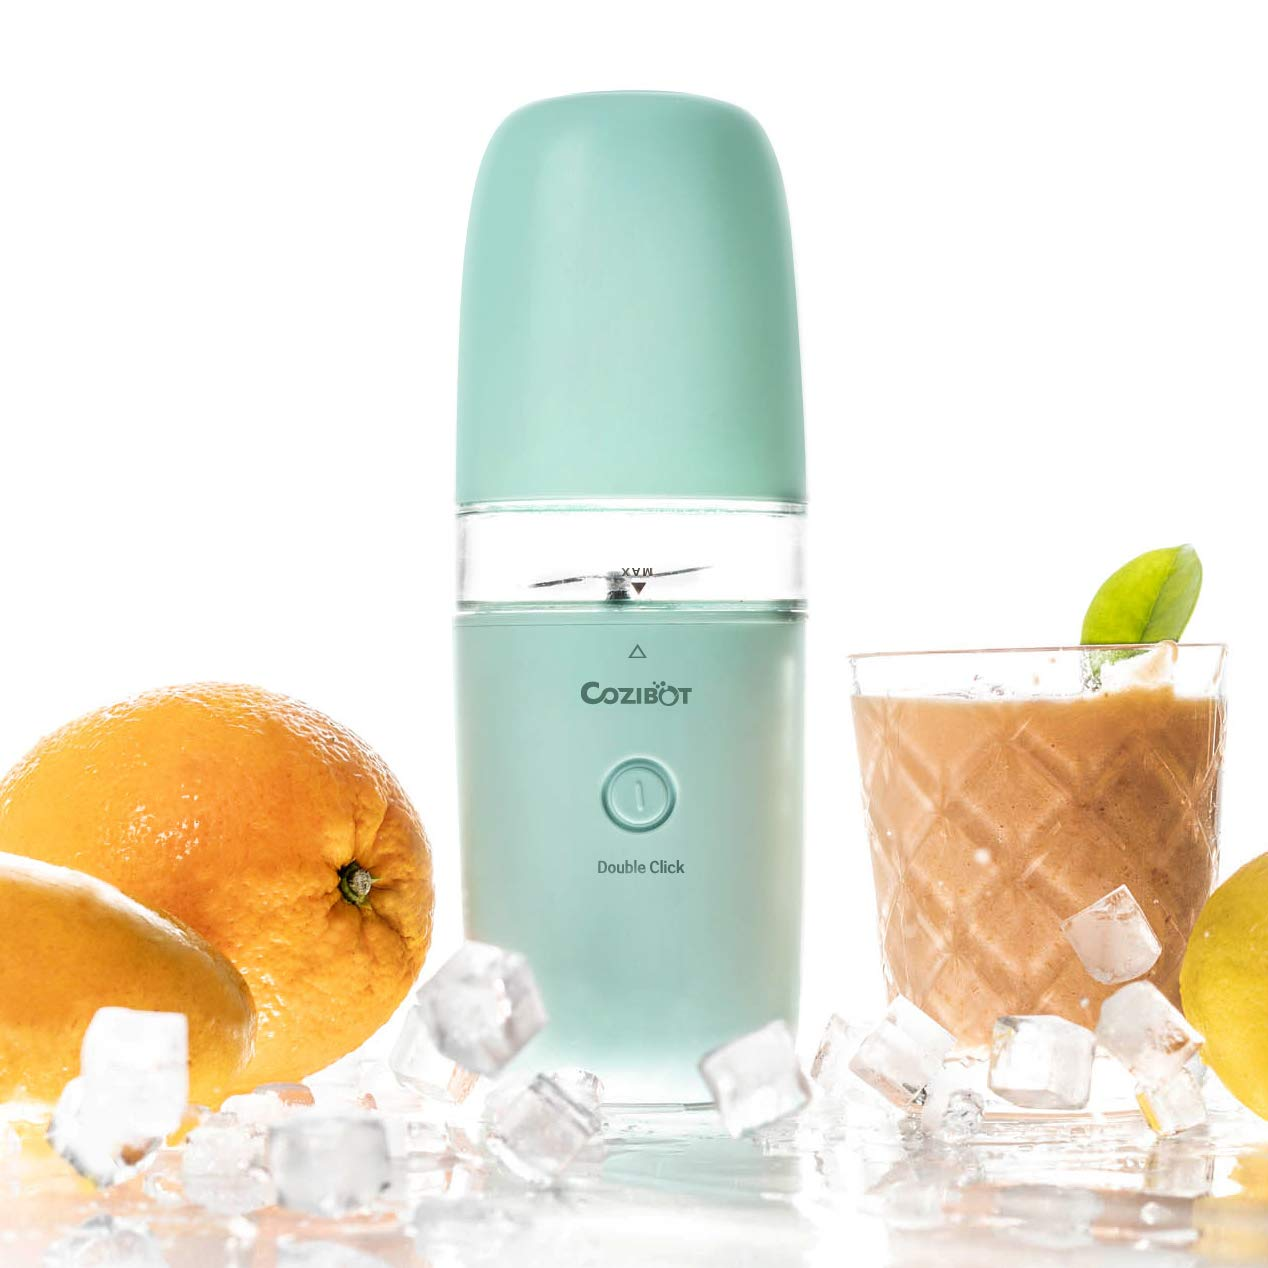 Top 10 Best Personal Blenders